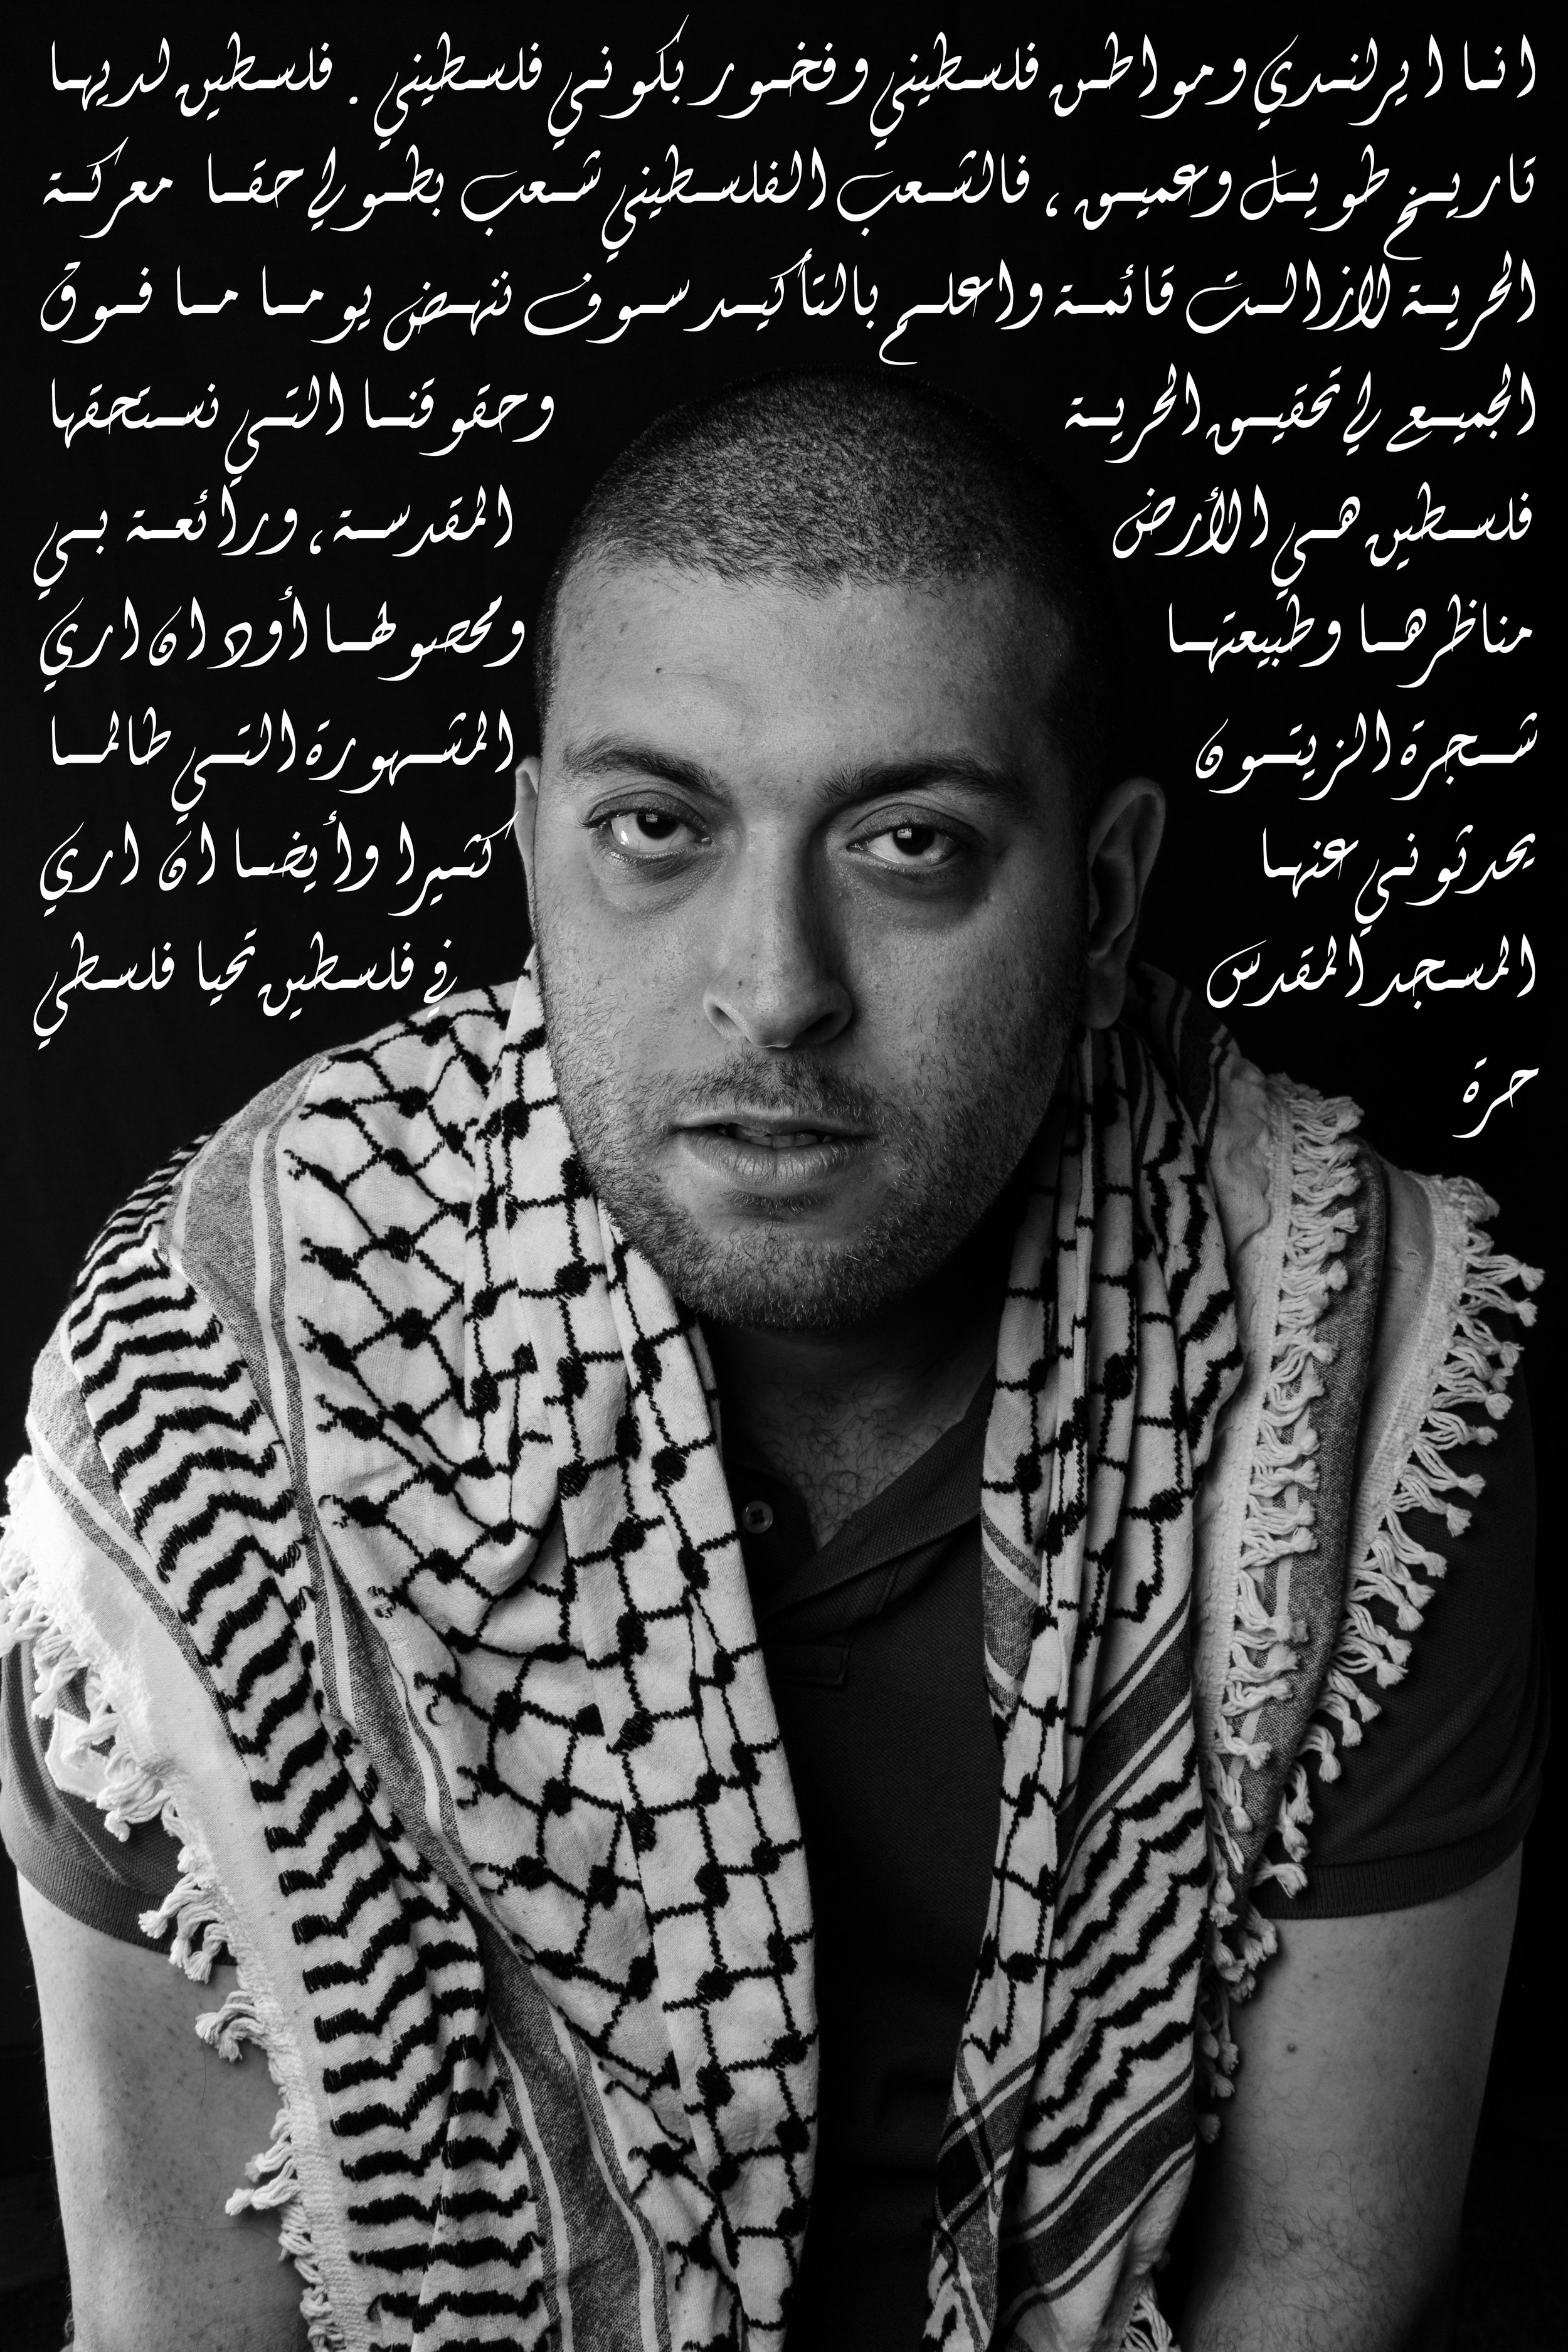 """""""I'm an Irish Palestinian citizen who is proud to be Palestinian. Palestine has a long history, and the people are truly heroic. The battle for freedom is still ongoing and I know for sure we will rise above this and get the freedom and rights that we deserve. Above all, Palestine is a holy land, with wonderful land, scenery and crops. I would love to be able see the famous olive tree plants that I have been told about so much, as well as see the holy mosques in Palestine. Love live Palestine."""""""